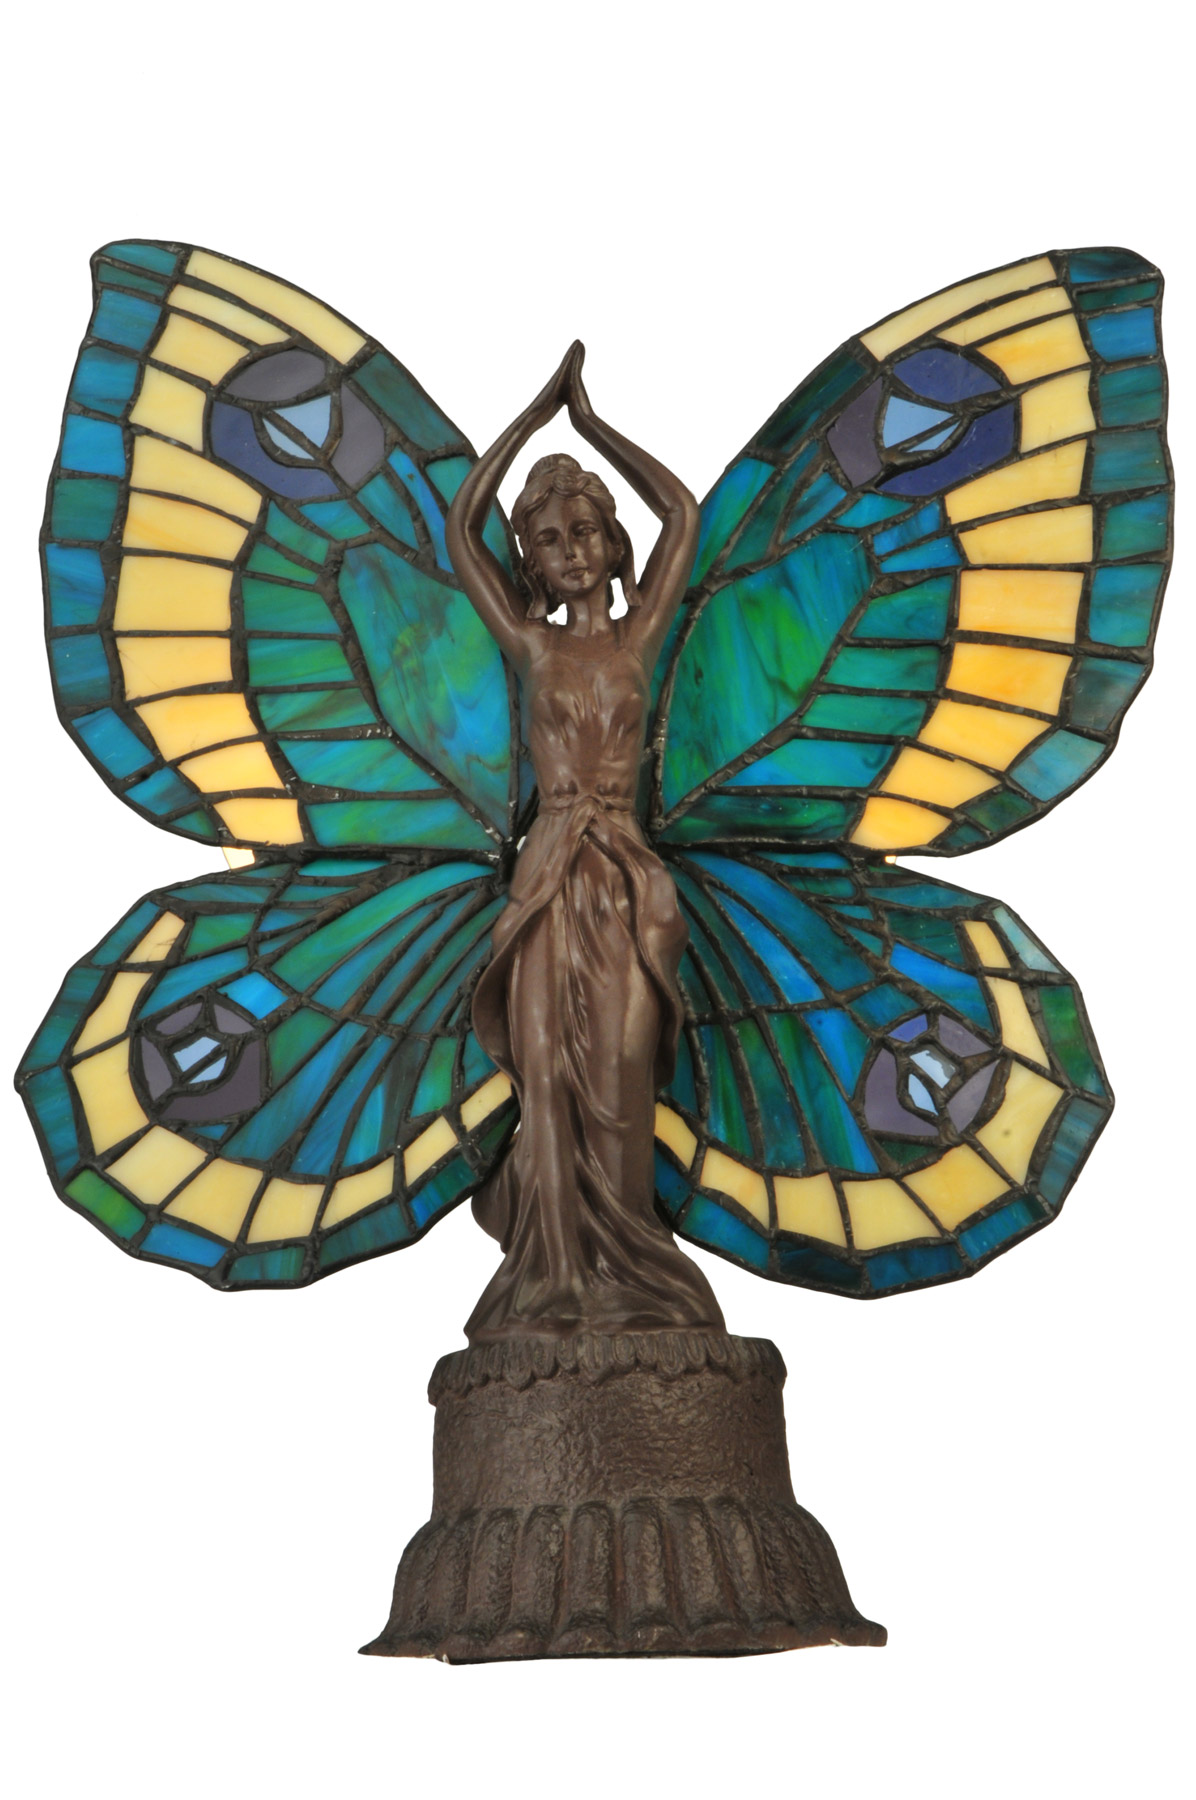 Meyda 48019 Tiffany Sculptured Butterfly Lady Accent Lamp